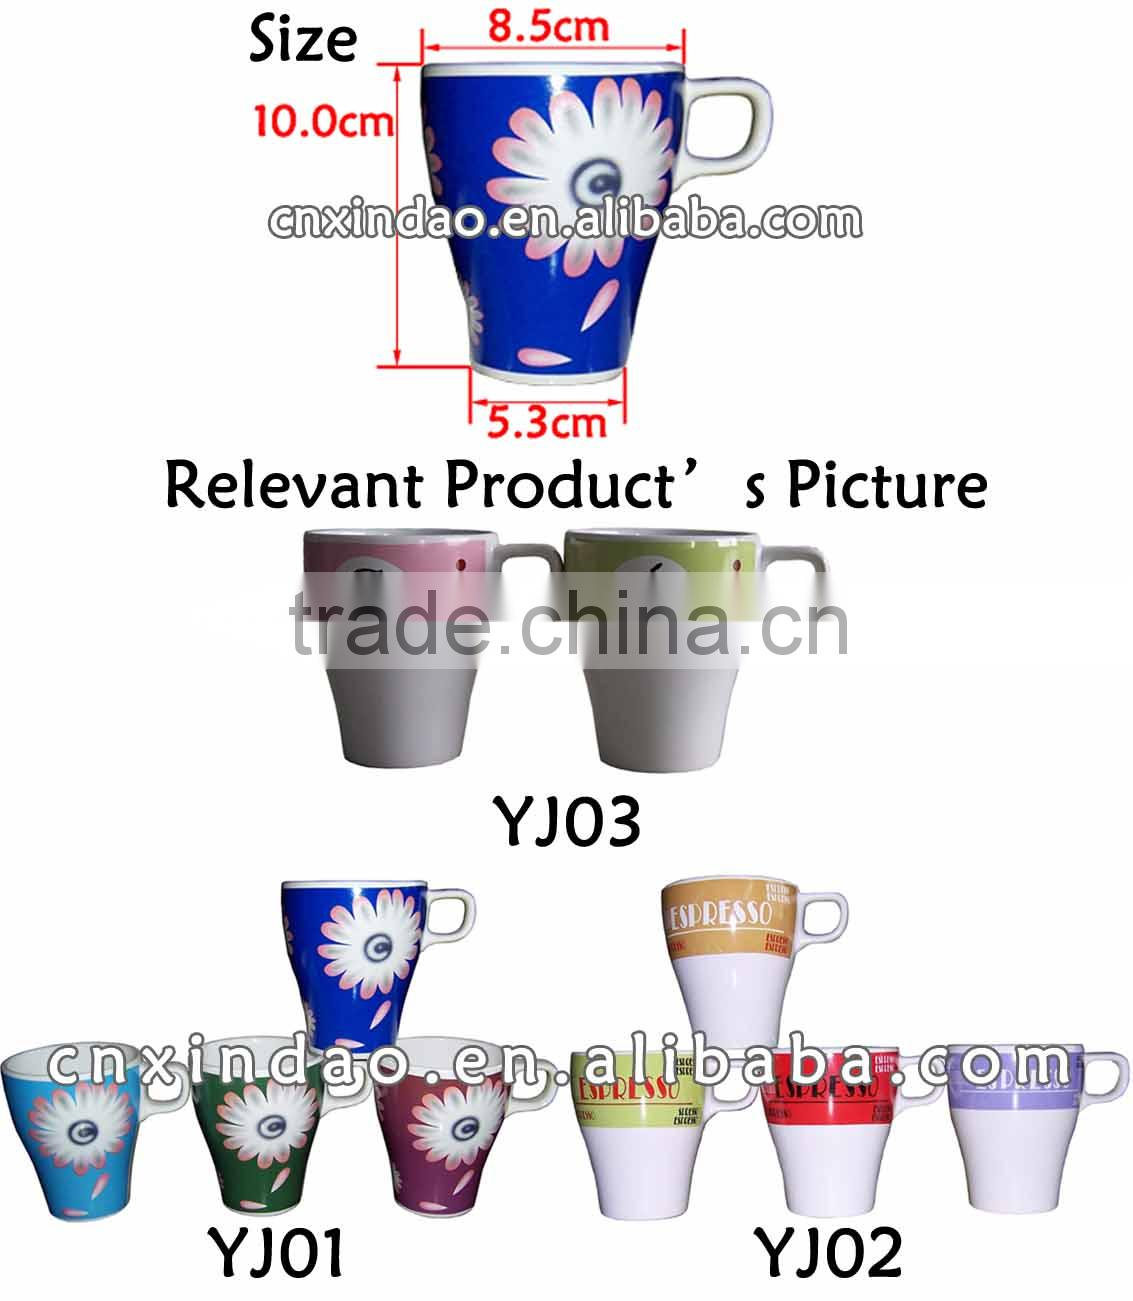 New Style Promotional Floral Designed Reusable Porcelain Tea Cup for Tableware Not Double Wall Cup